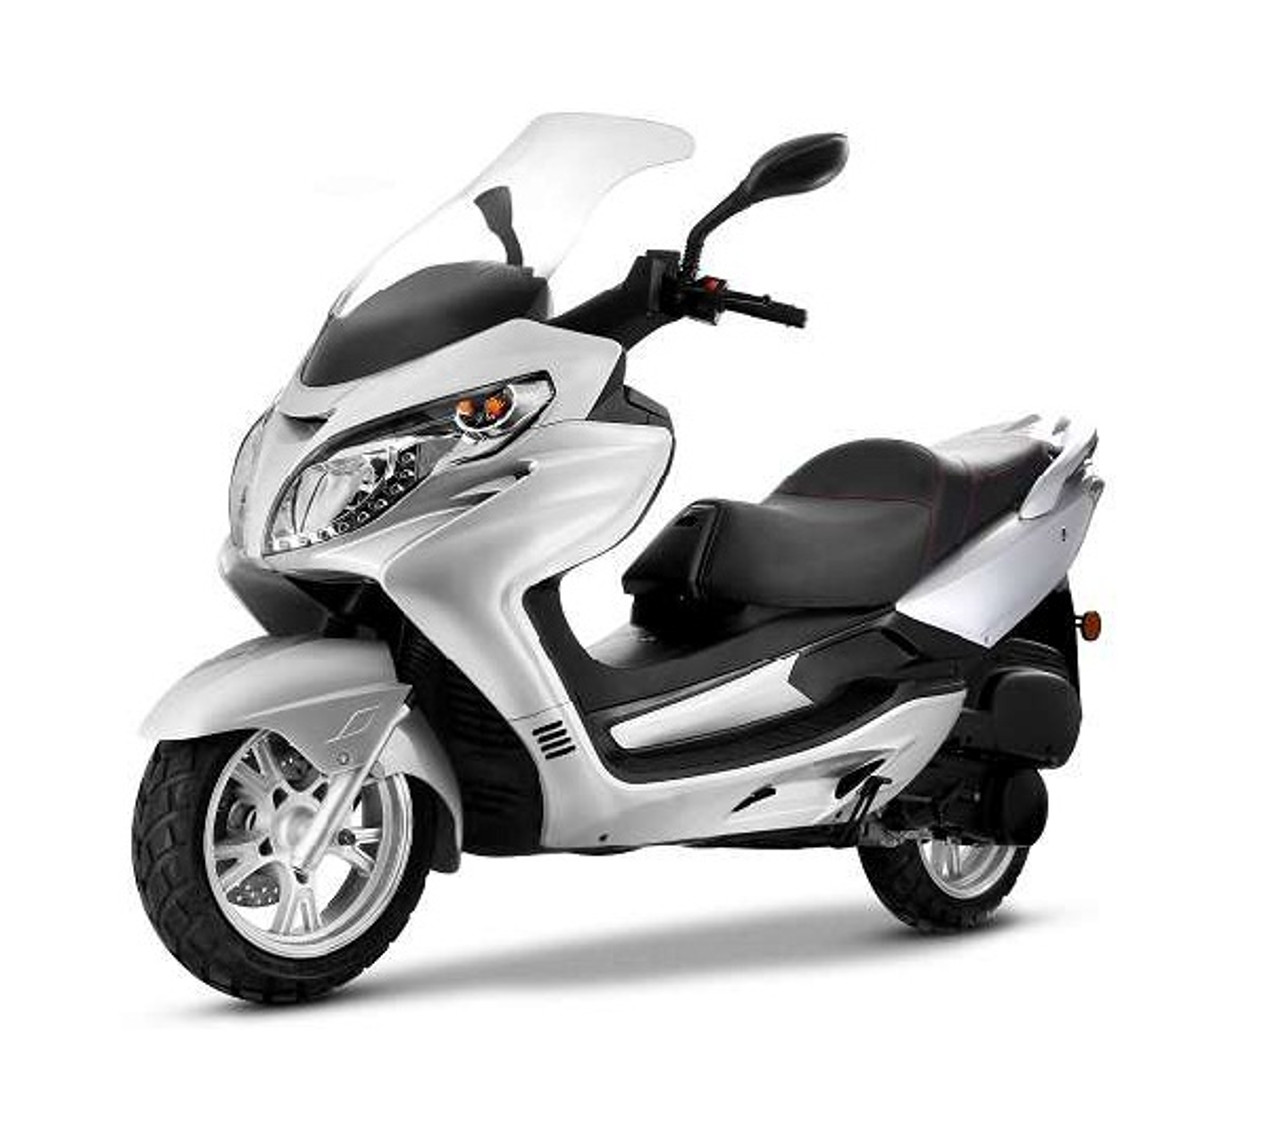 Amigo Znen 2018 VISTA-150 149cc Street Legal Scooter, 4 Stroke with 8.5 HP @ 7000 RPM Air Cooled